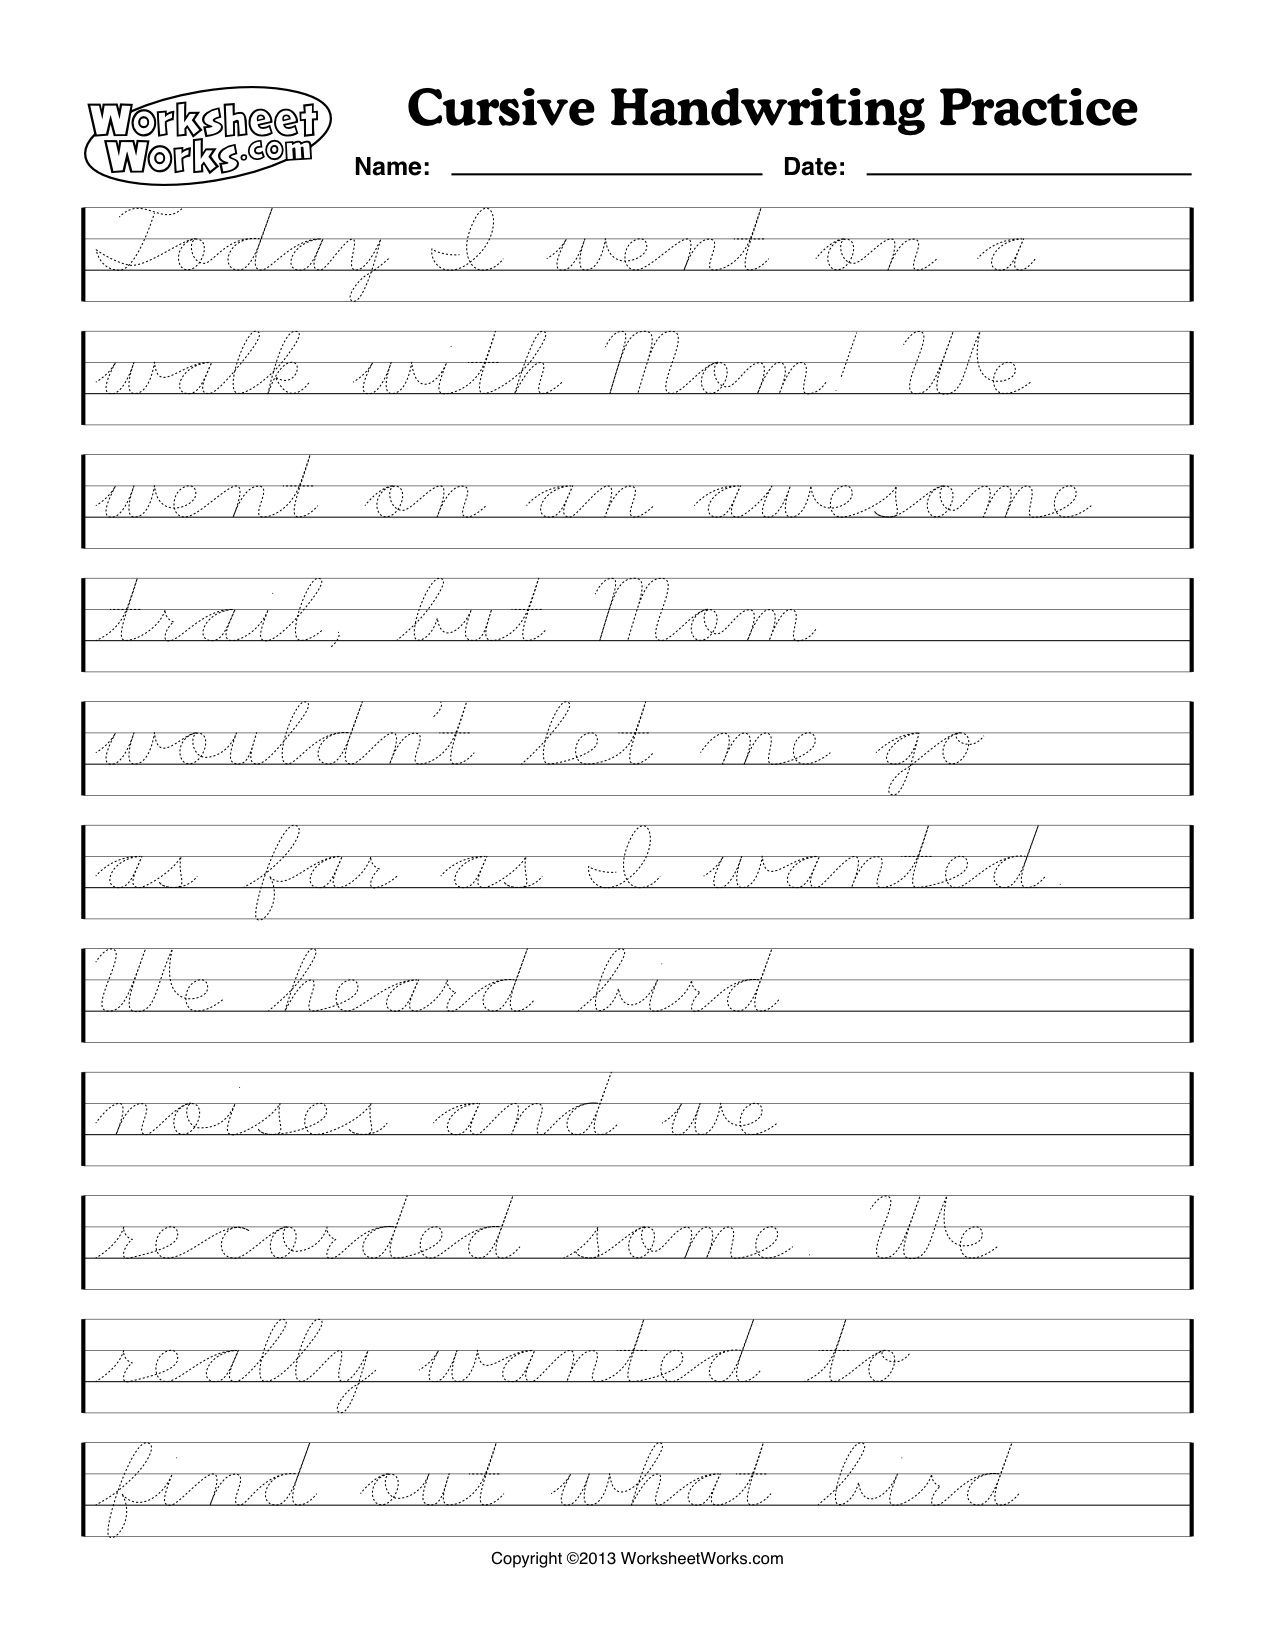 cursive handwriting worksheets Cursive Writing Worksheet